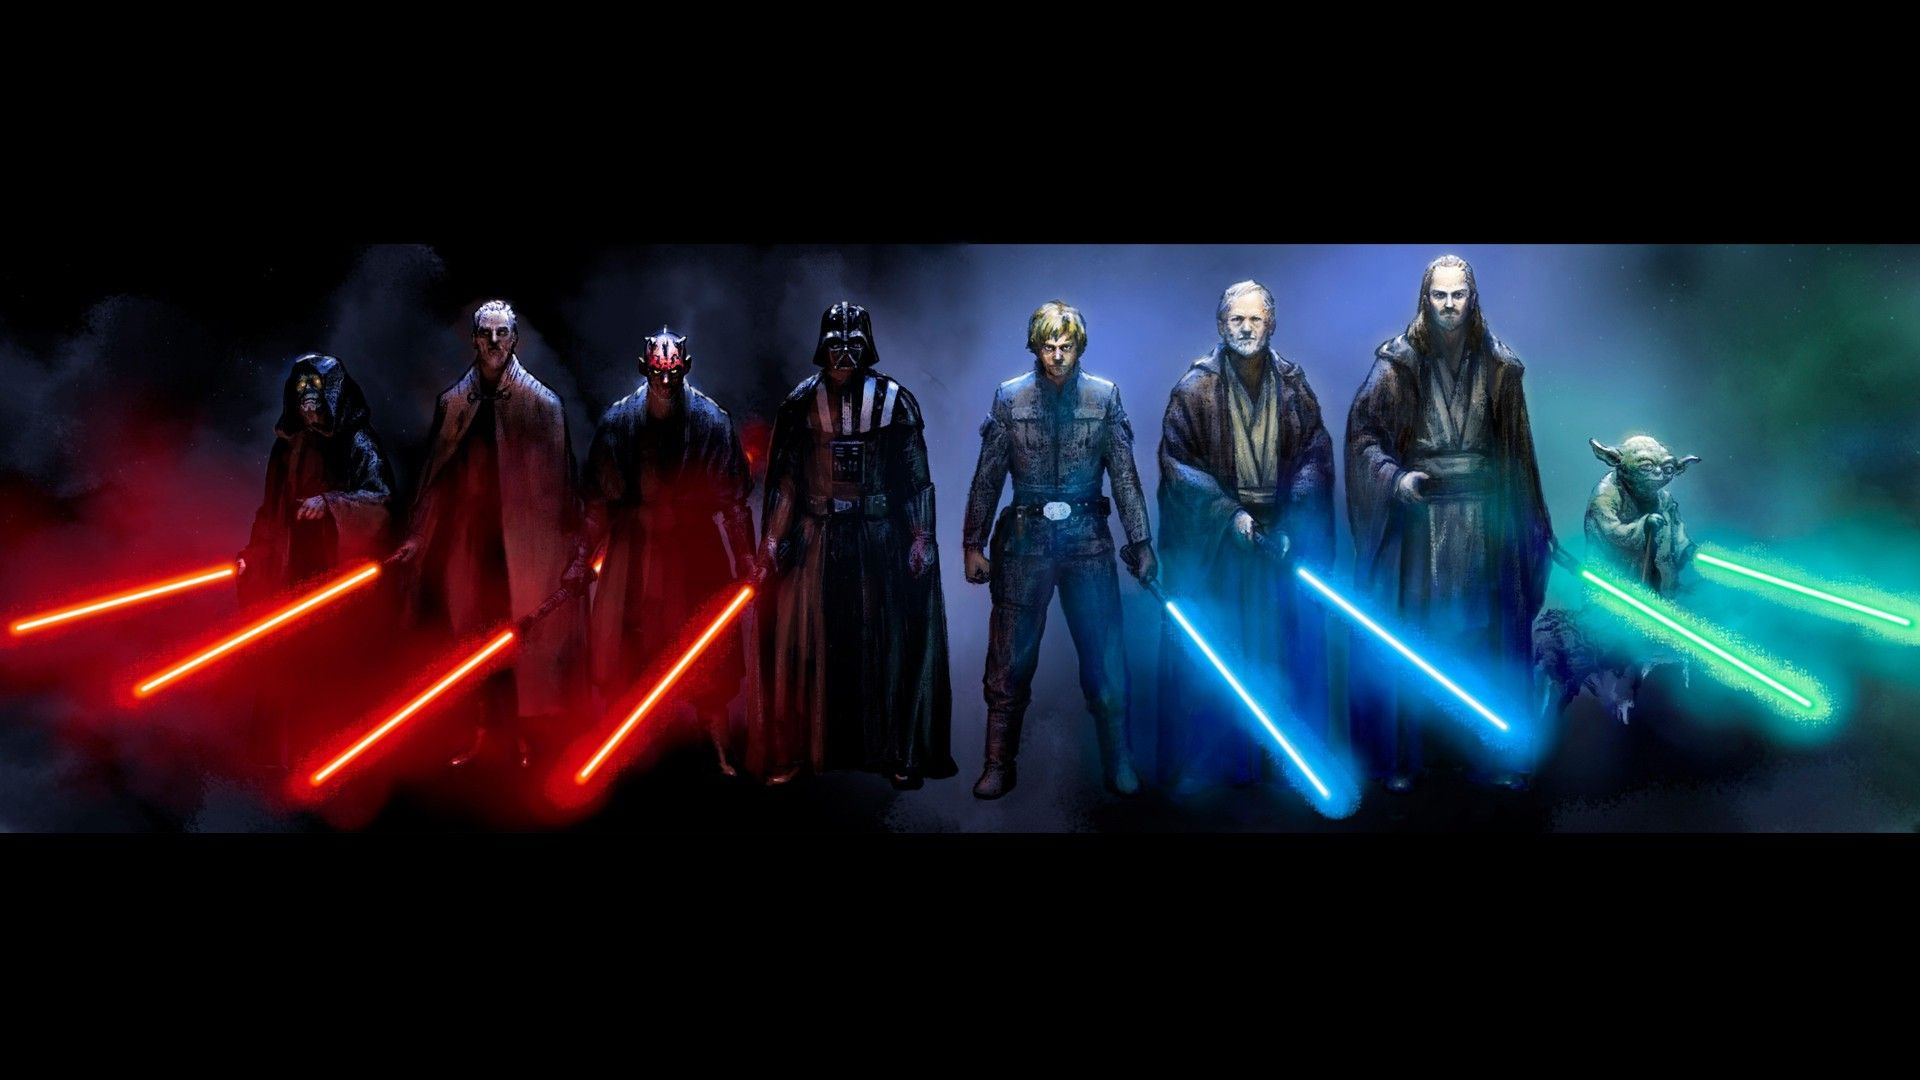 The Force Is With You Always Star Wars Images Star Wars Sith Star Wars Wallpaper